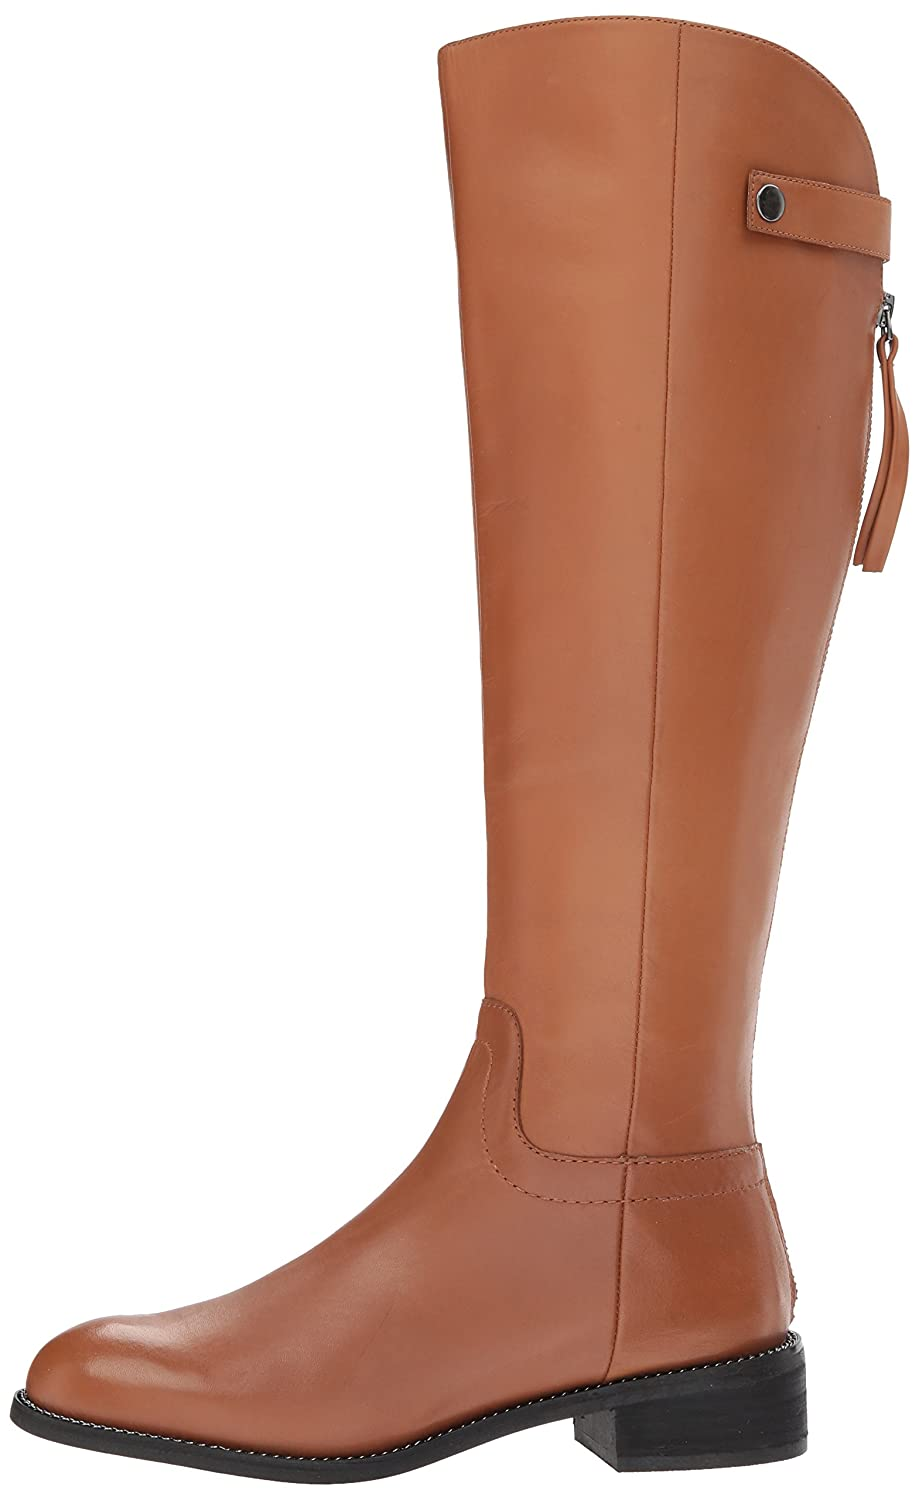 Franco Sarto Women's 6 Brindley Equestrian Boot B06XWHDFWR 6 Women's B(M) US|Whiskey 568c1e